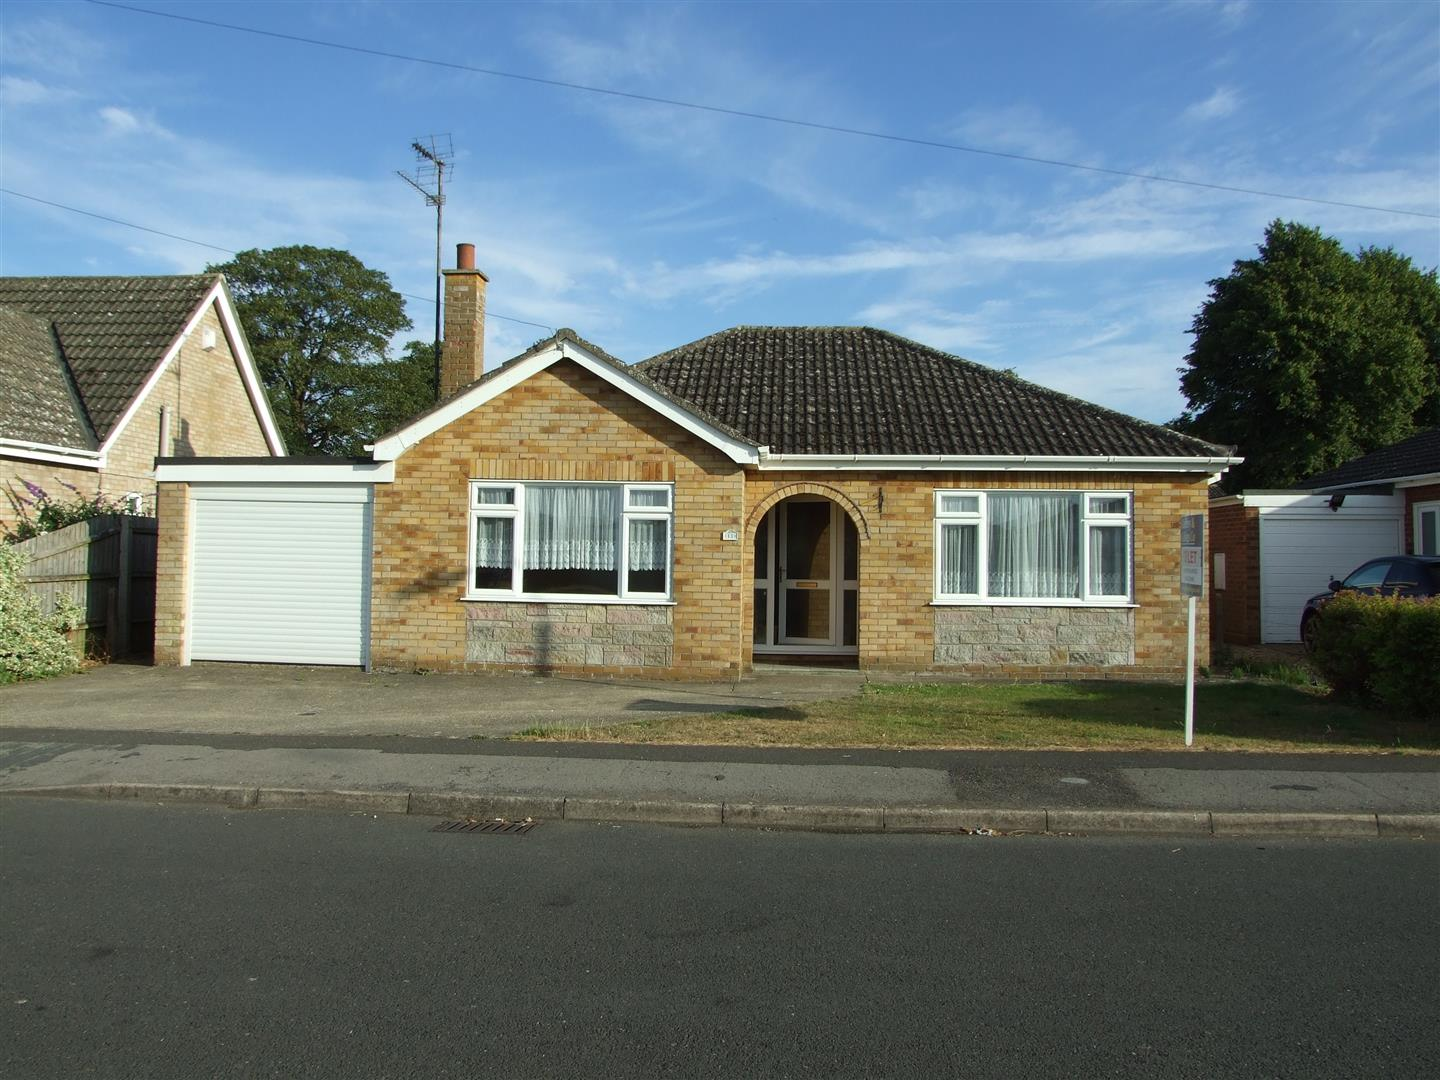 2 bed detached bungalow to rent in Long Sutton Spalding, PE12 9DU, PE12